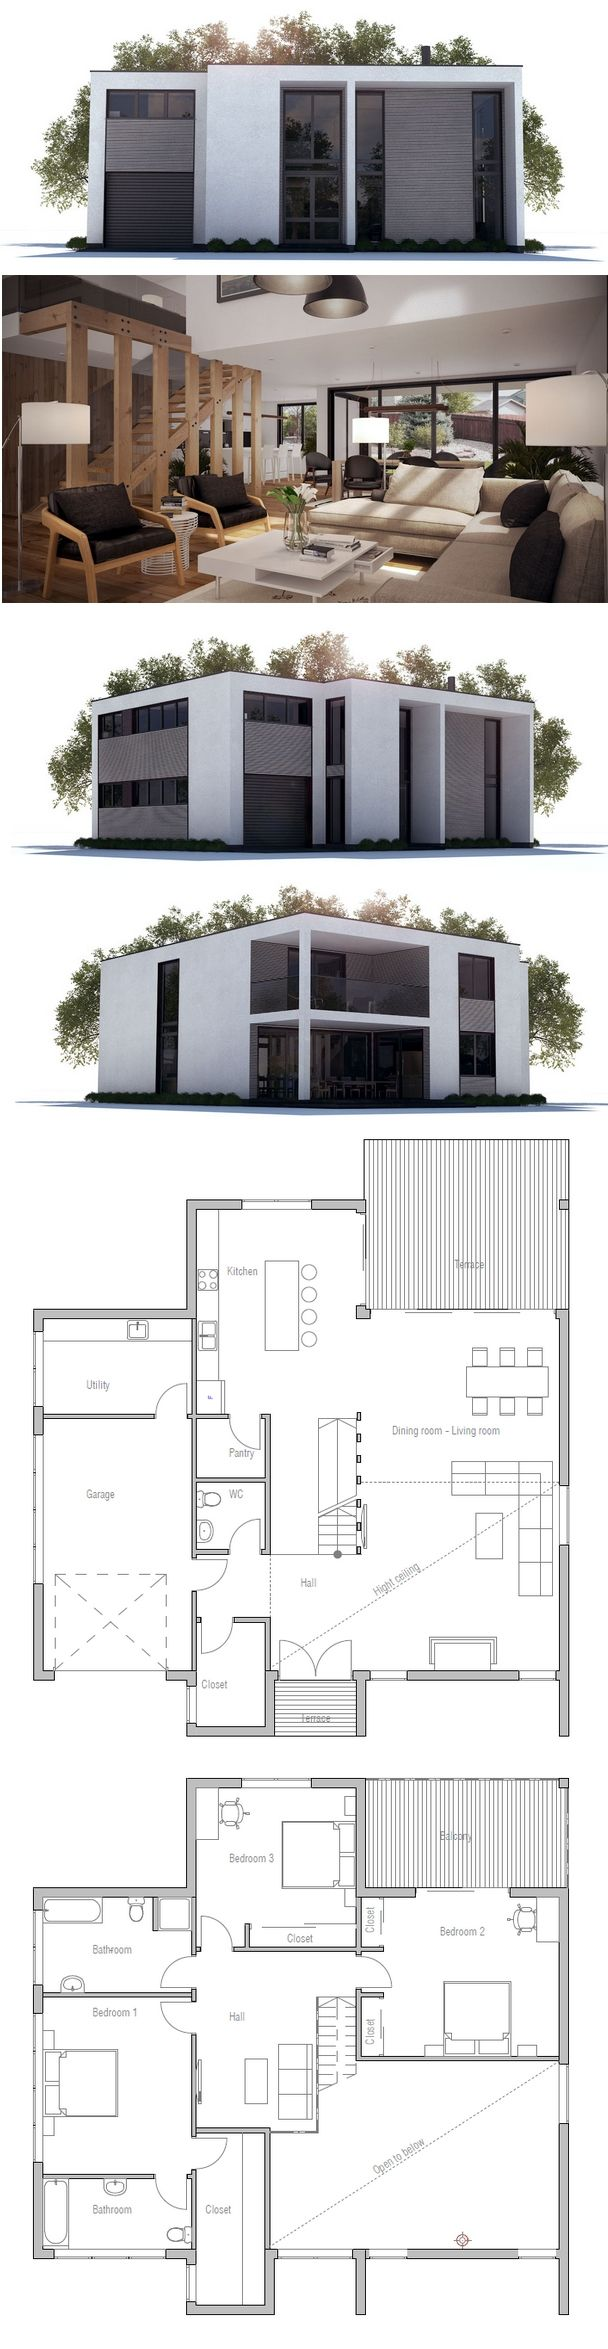 House Plan from ConcepHome.com   House Designs 2014   Pinterest ...